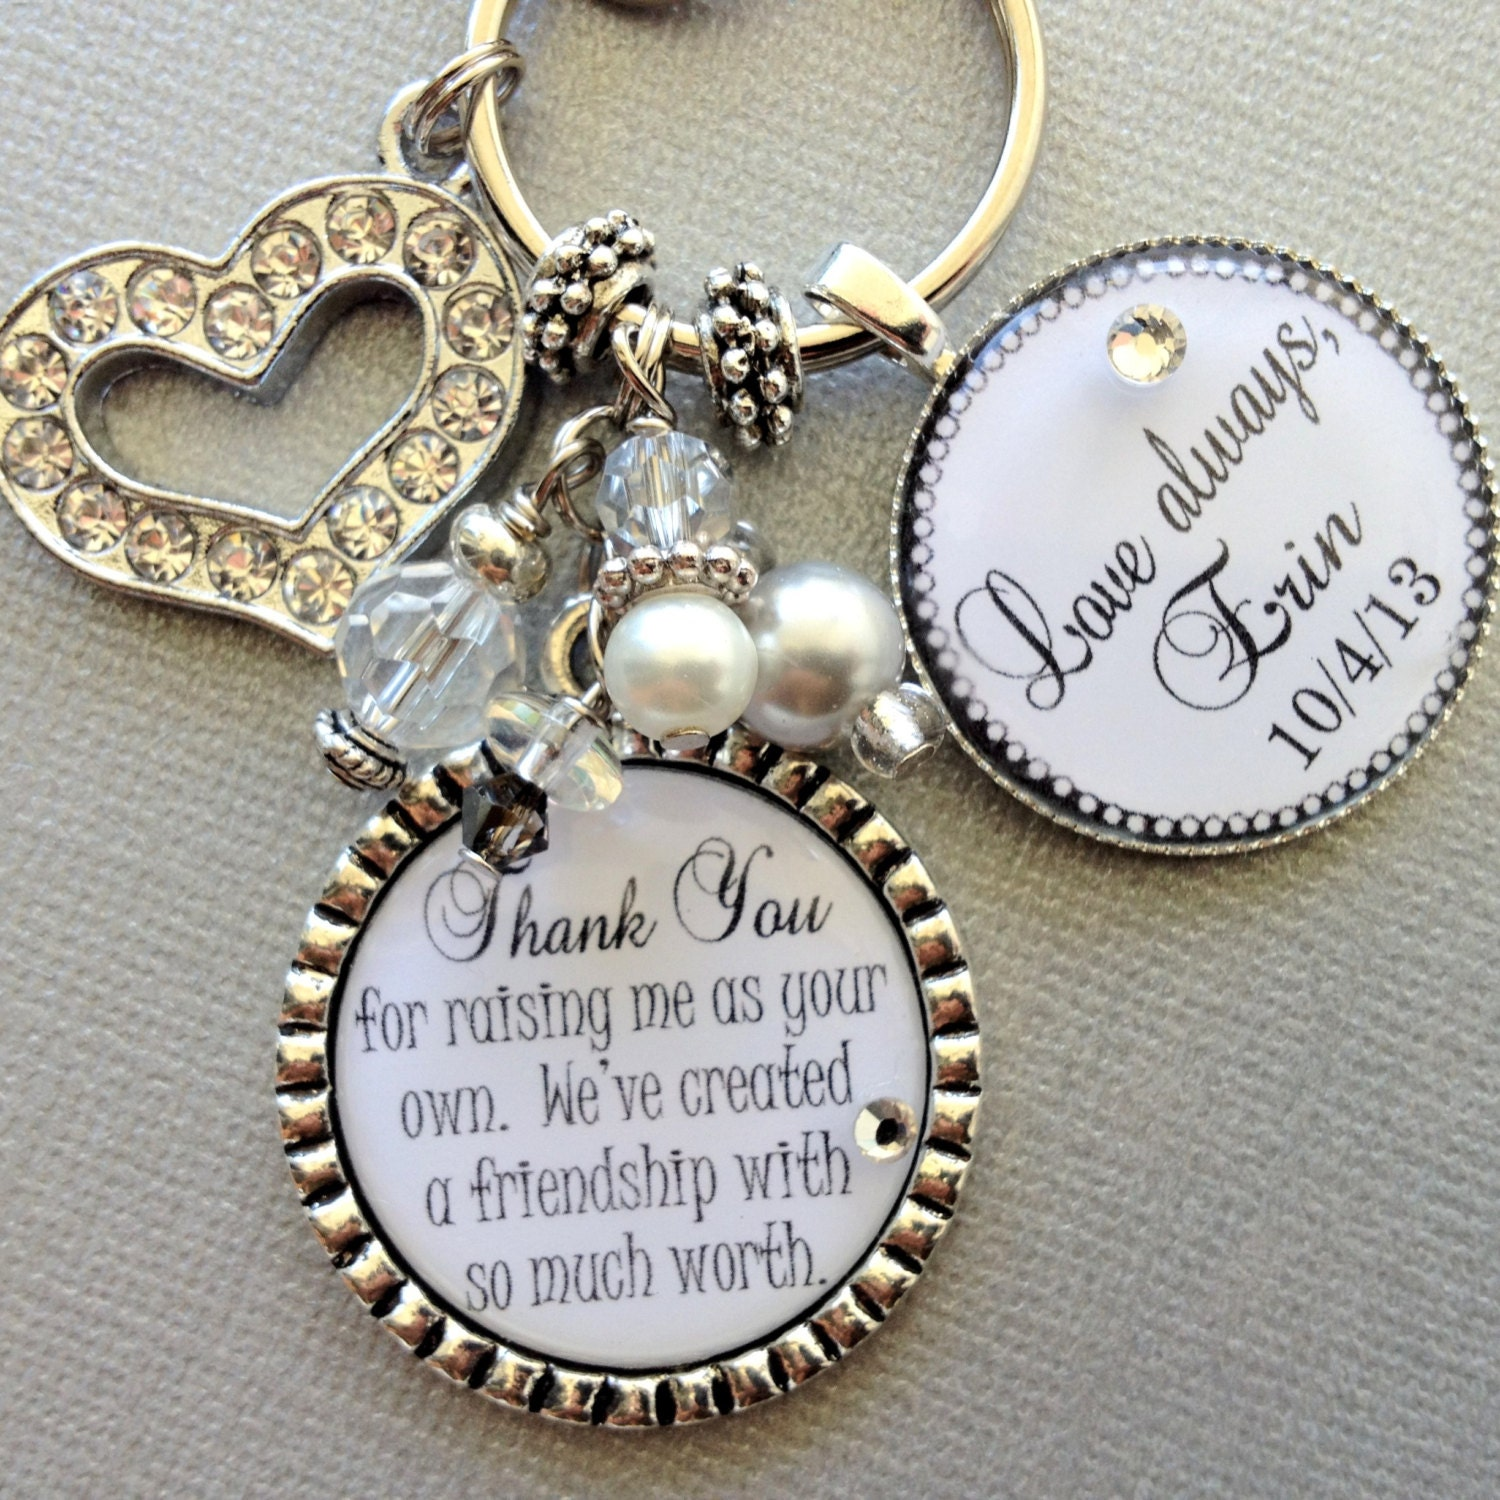 Wedding Gift For Dad And Stepmom : ... of the bride gift pers onalized wedding quote thank you gift step mom